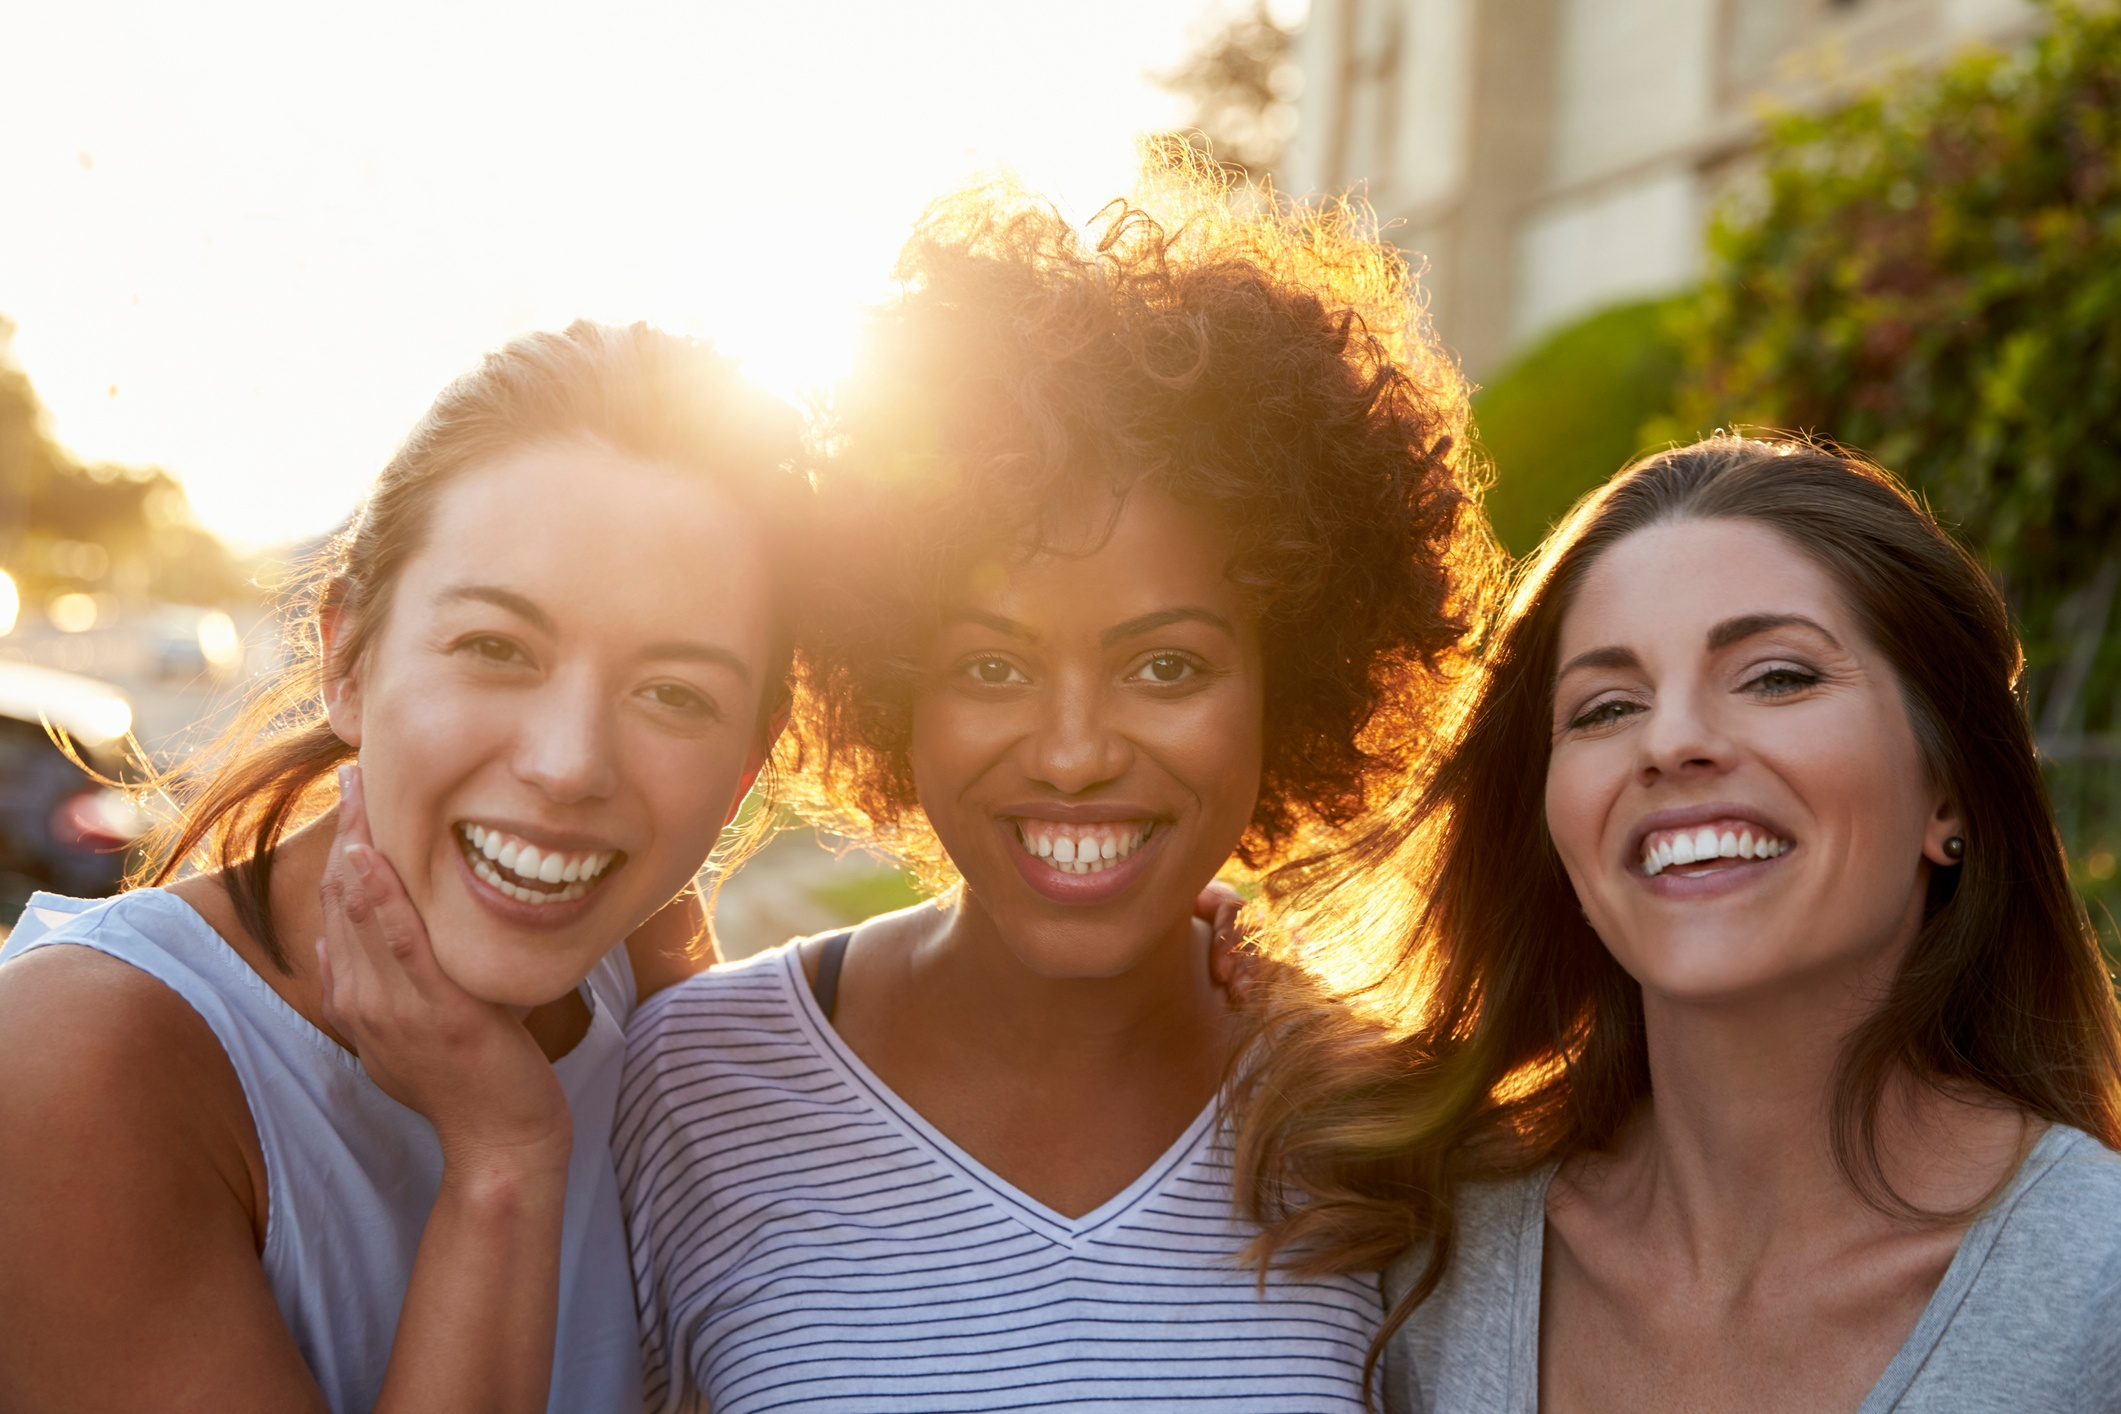 Three smiling women in their 30s